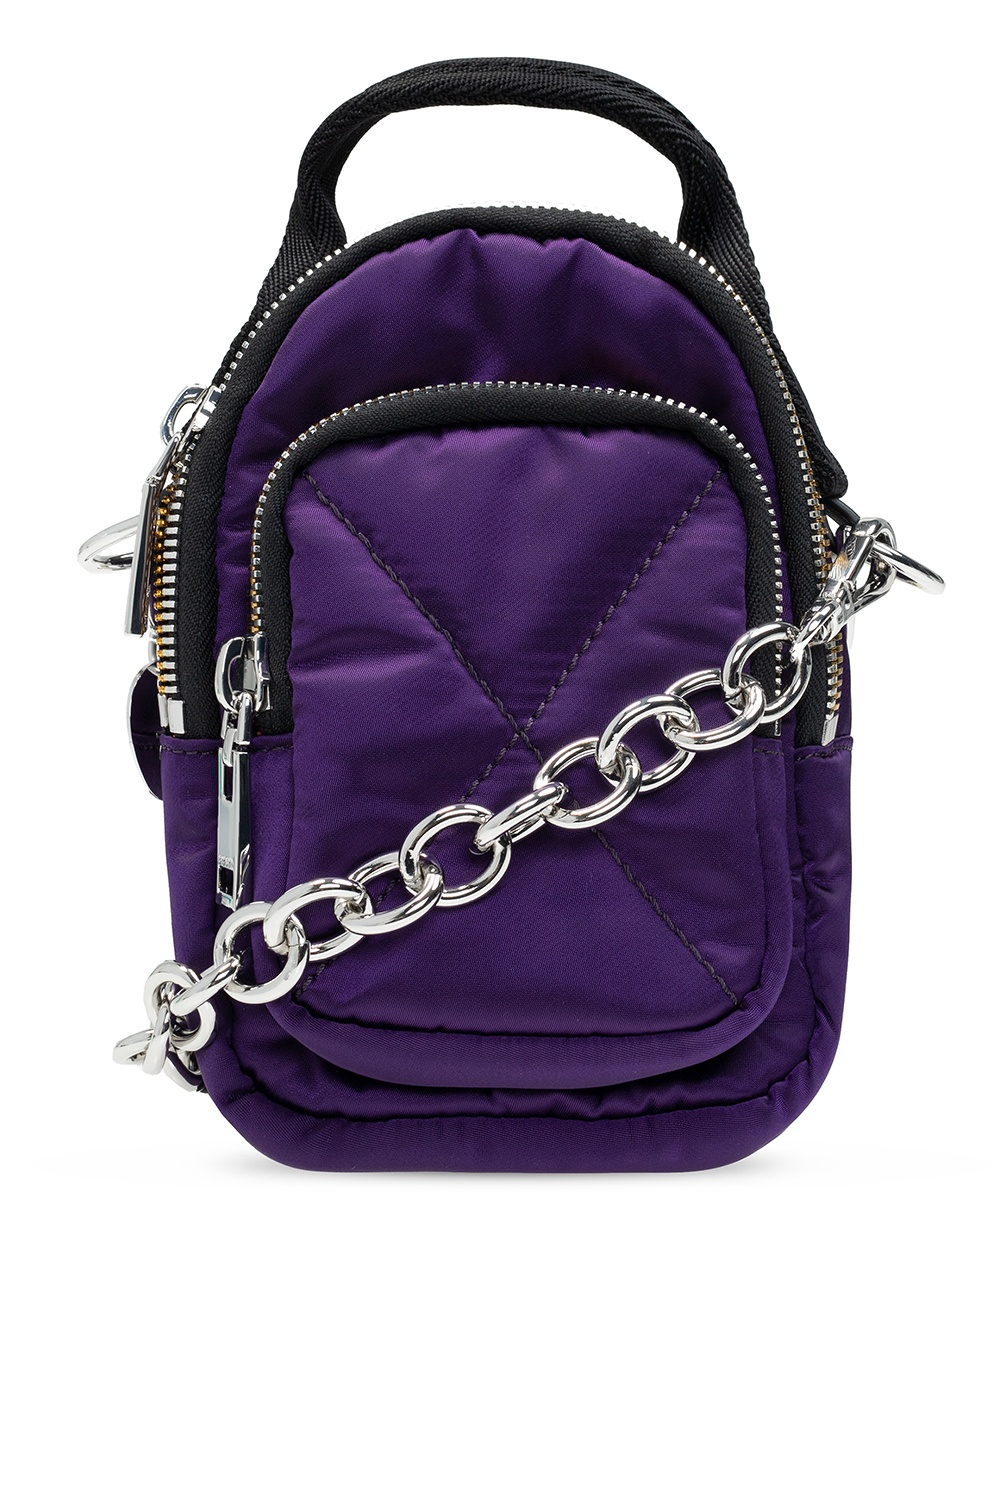 Diesel 'Ledybag' backpack